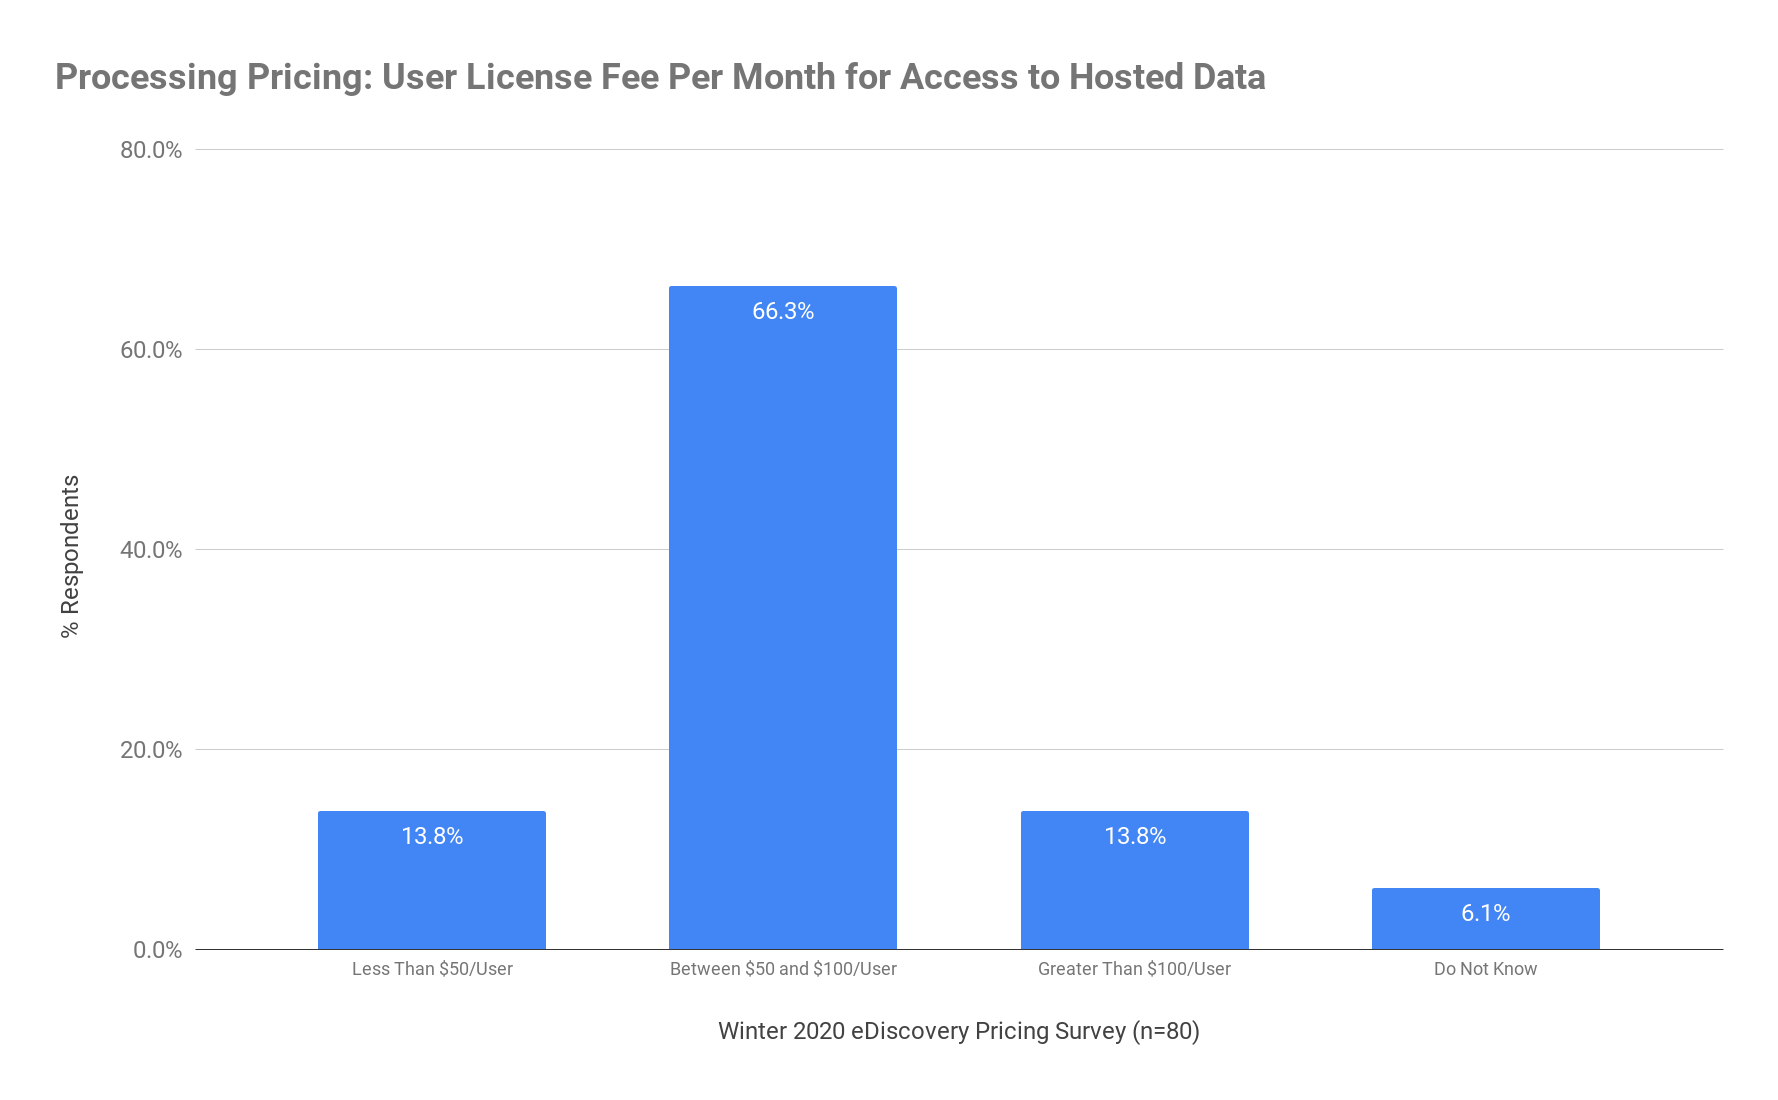 Processing Pricing - User License Fee Per Month for Access to Hosted Data Winter 2020